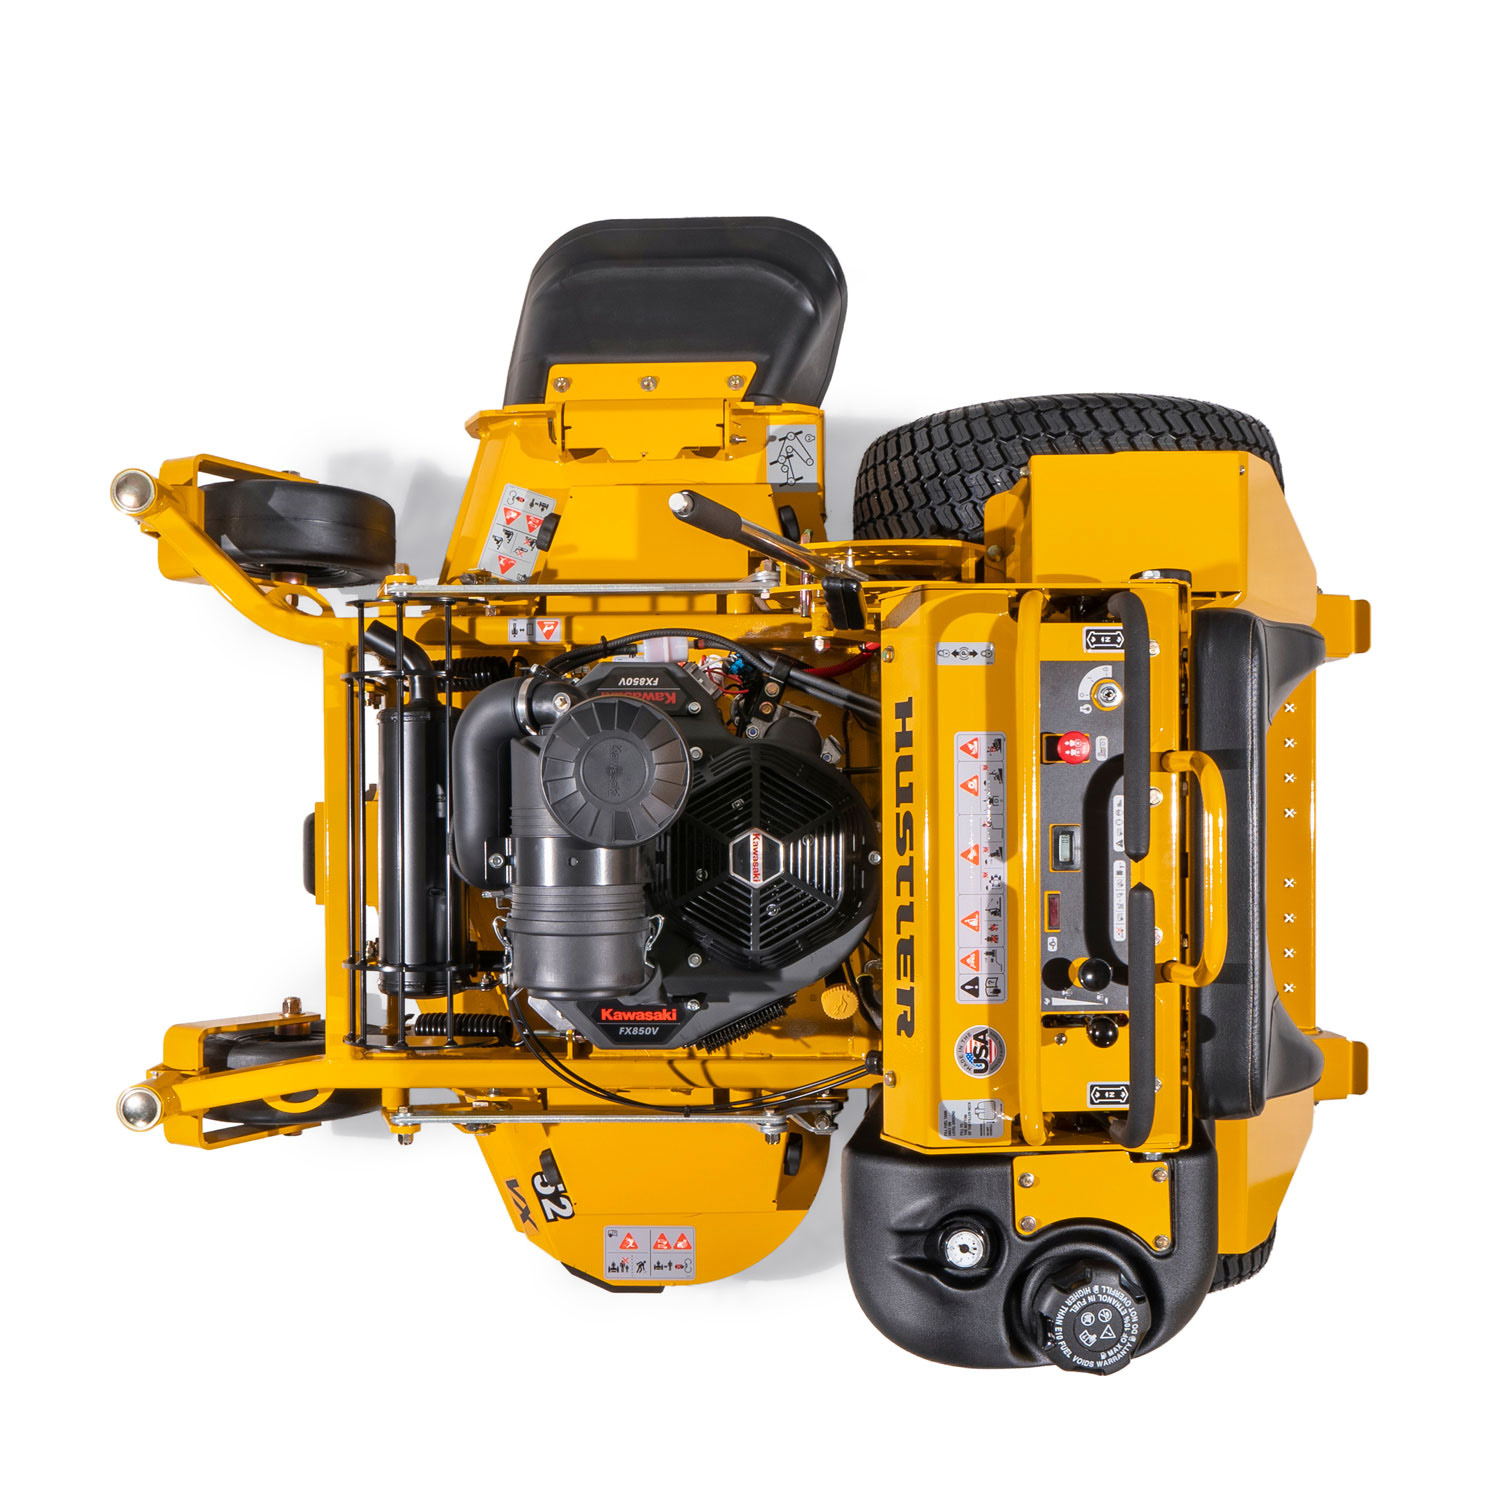 Image of a yellow stand-on mower from above